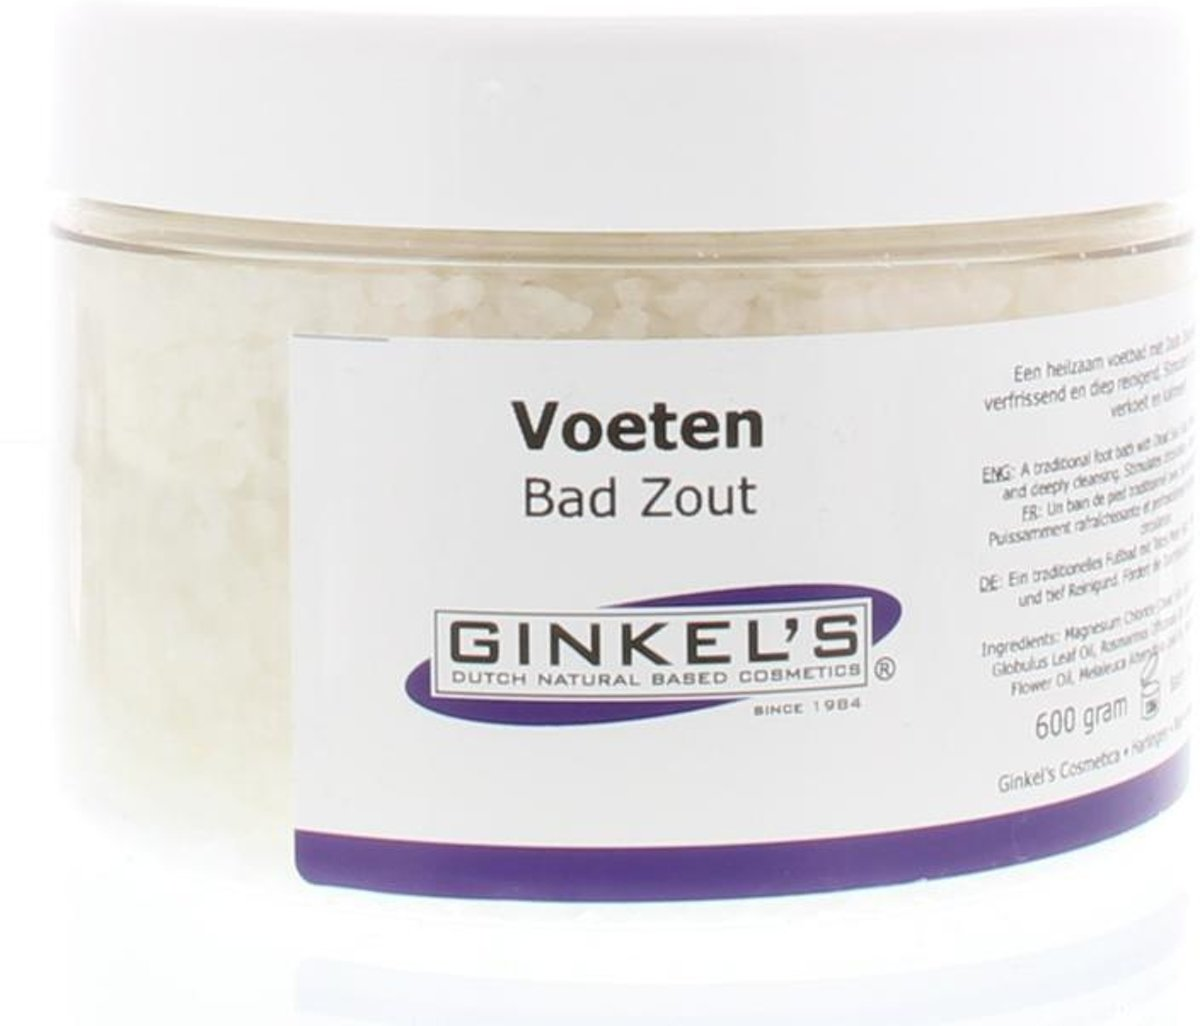 Ginkels - 600 gr - Voetbadzout